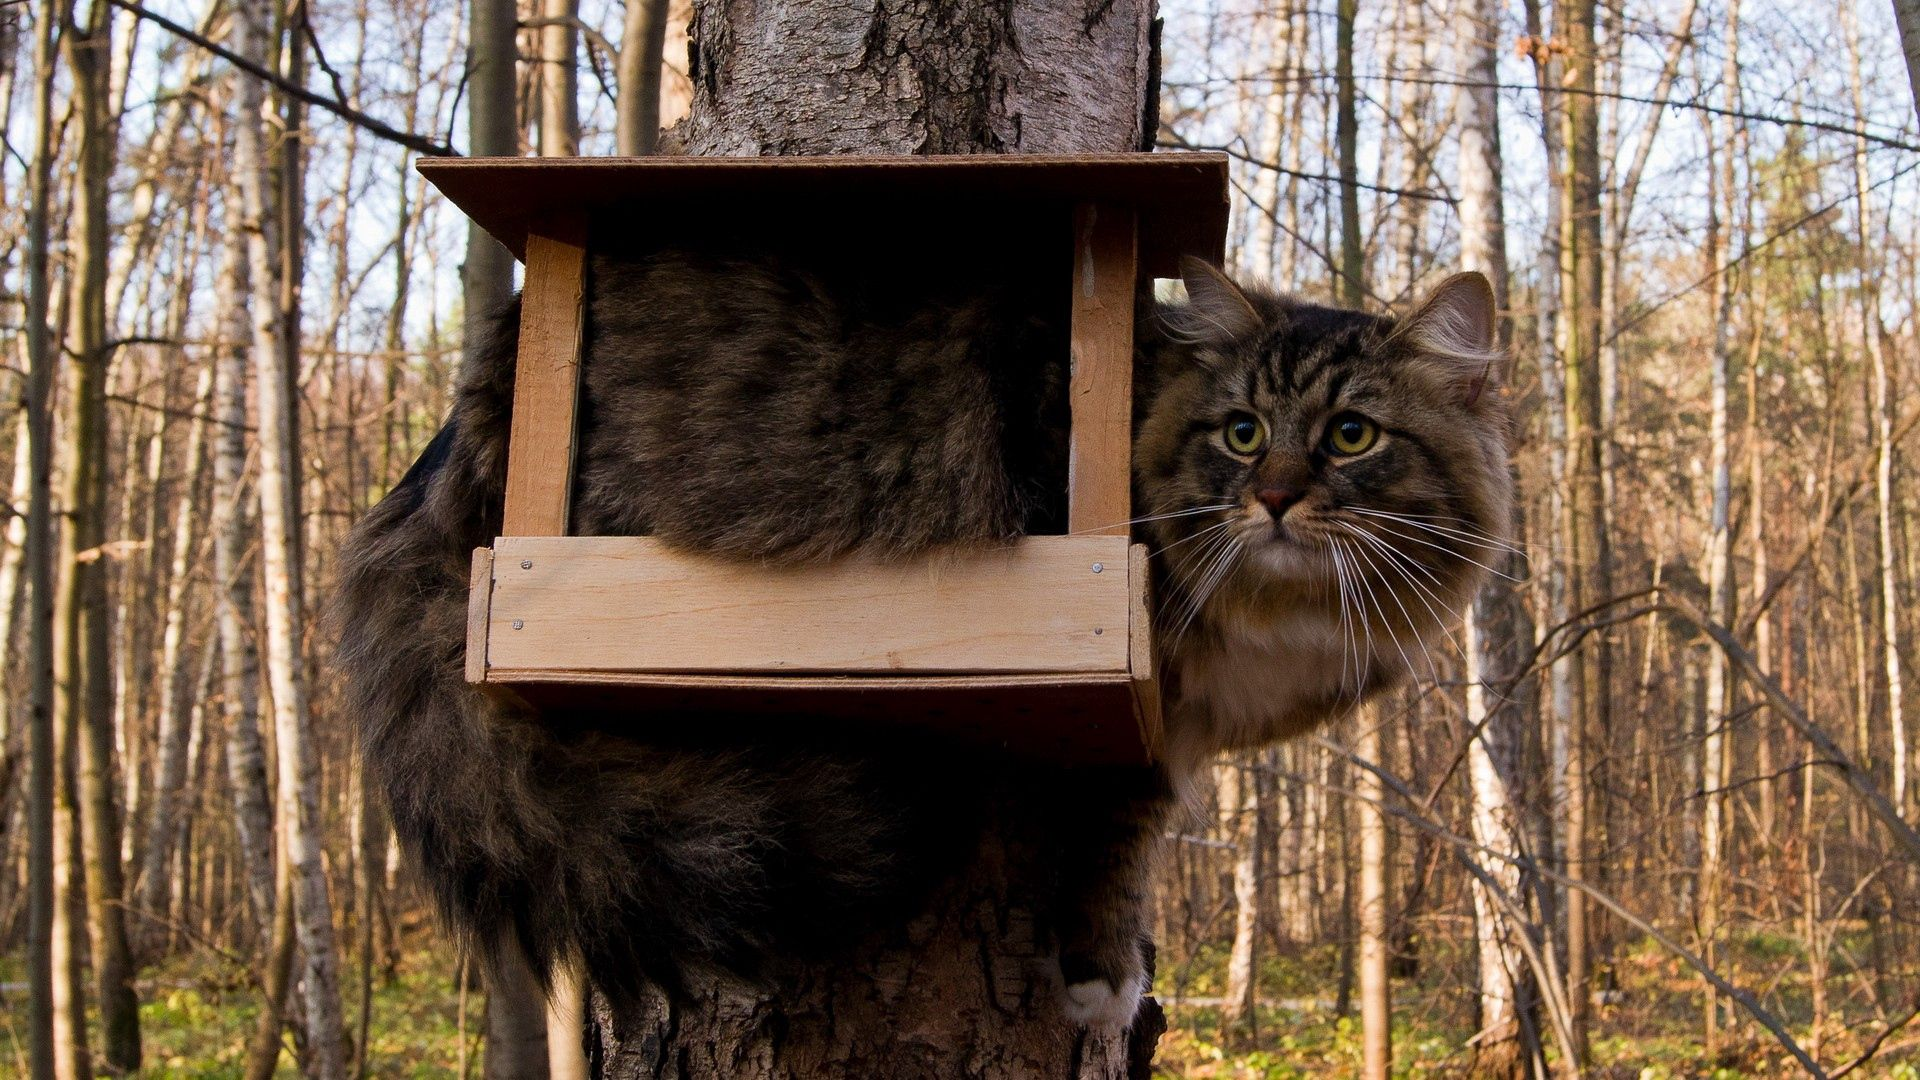 87181 download wallpaper Animals, Cat, Birdhouse, Fluffy, Funny, Situation screensavers and pictures for free